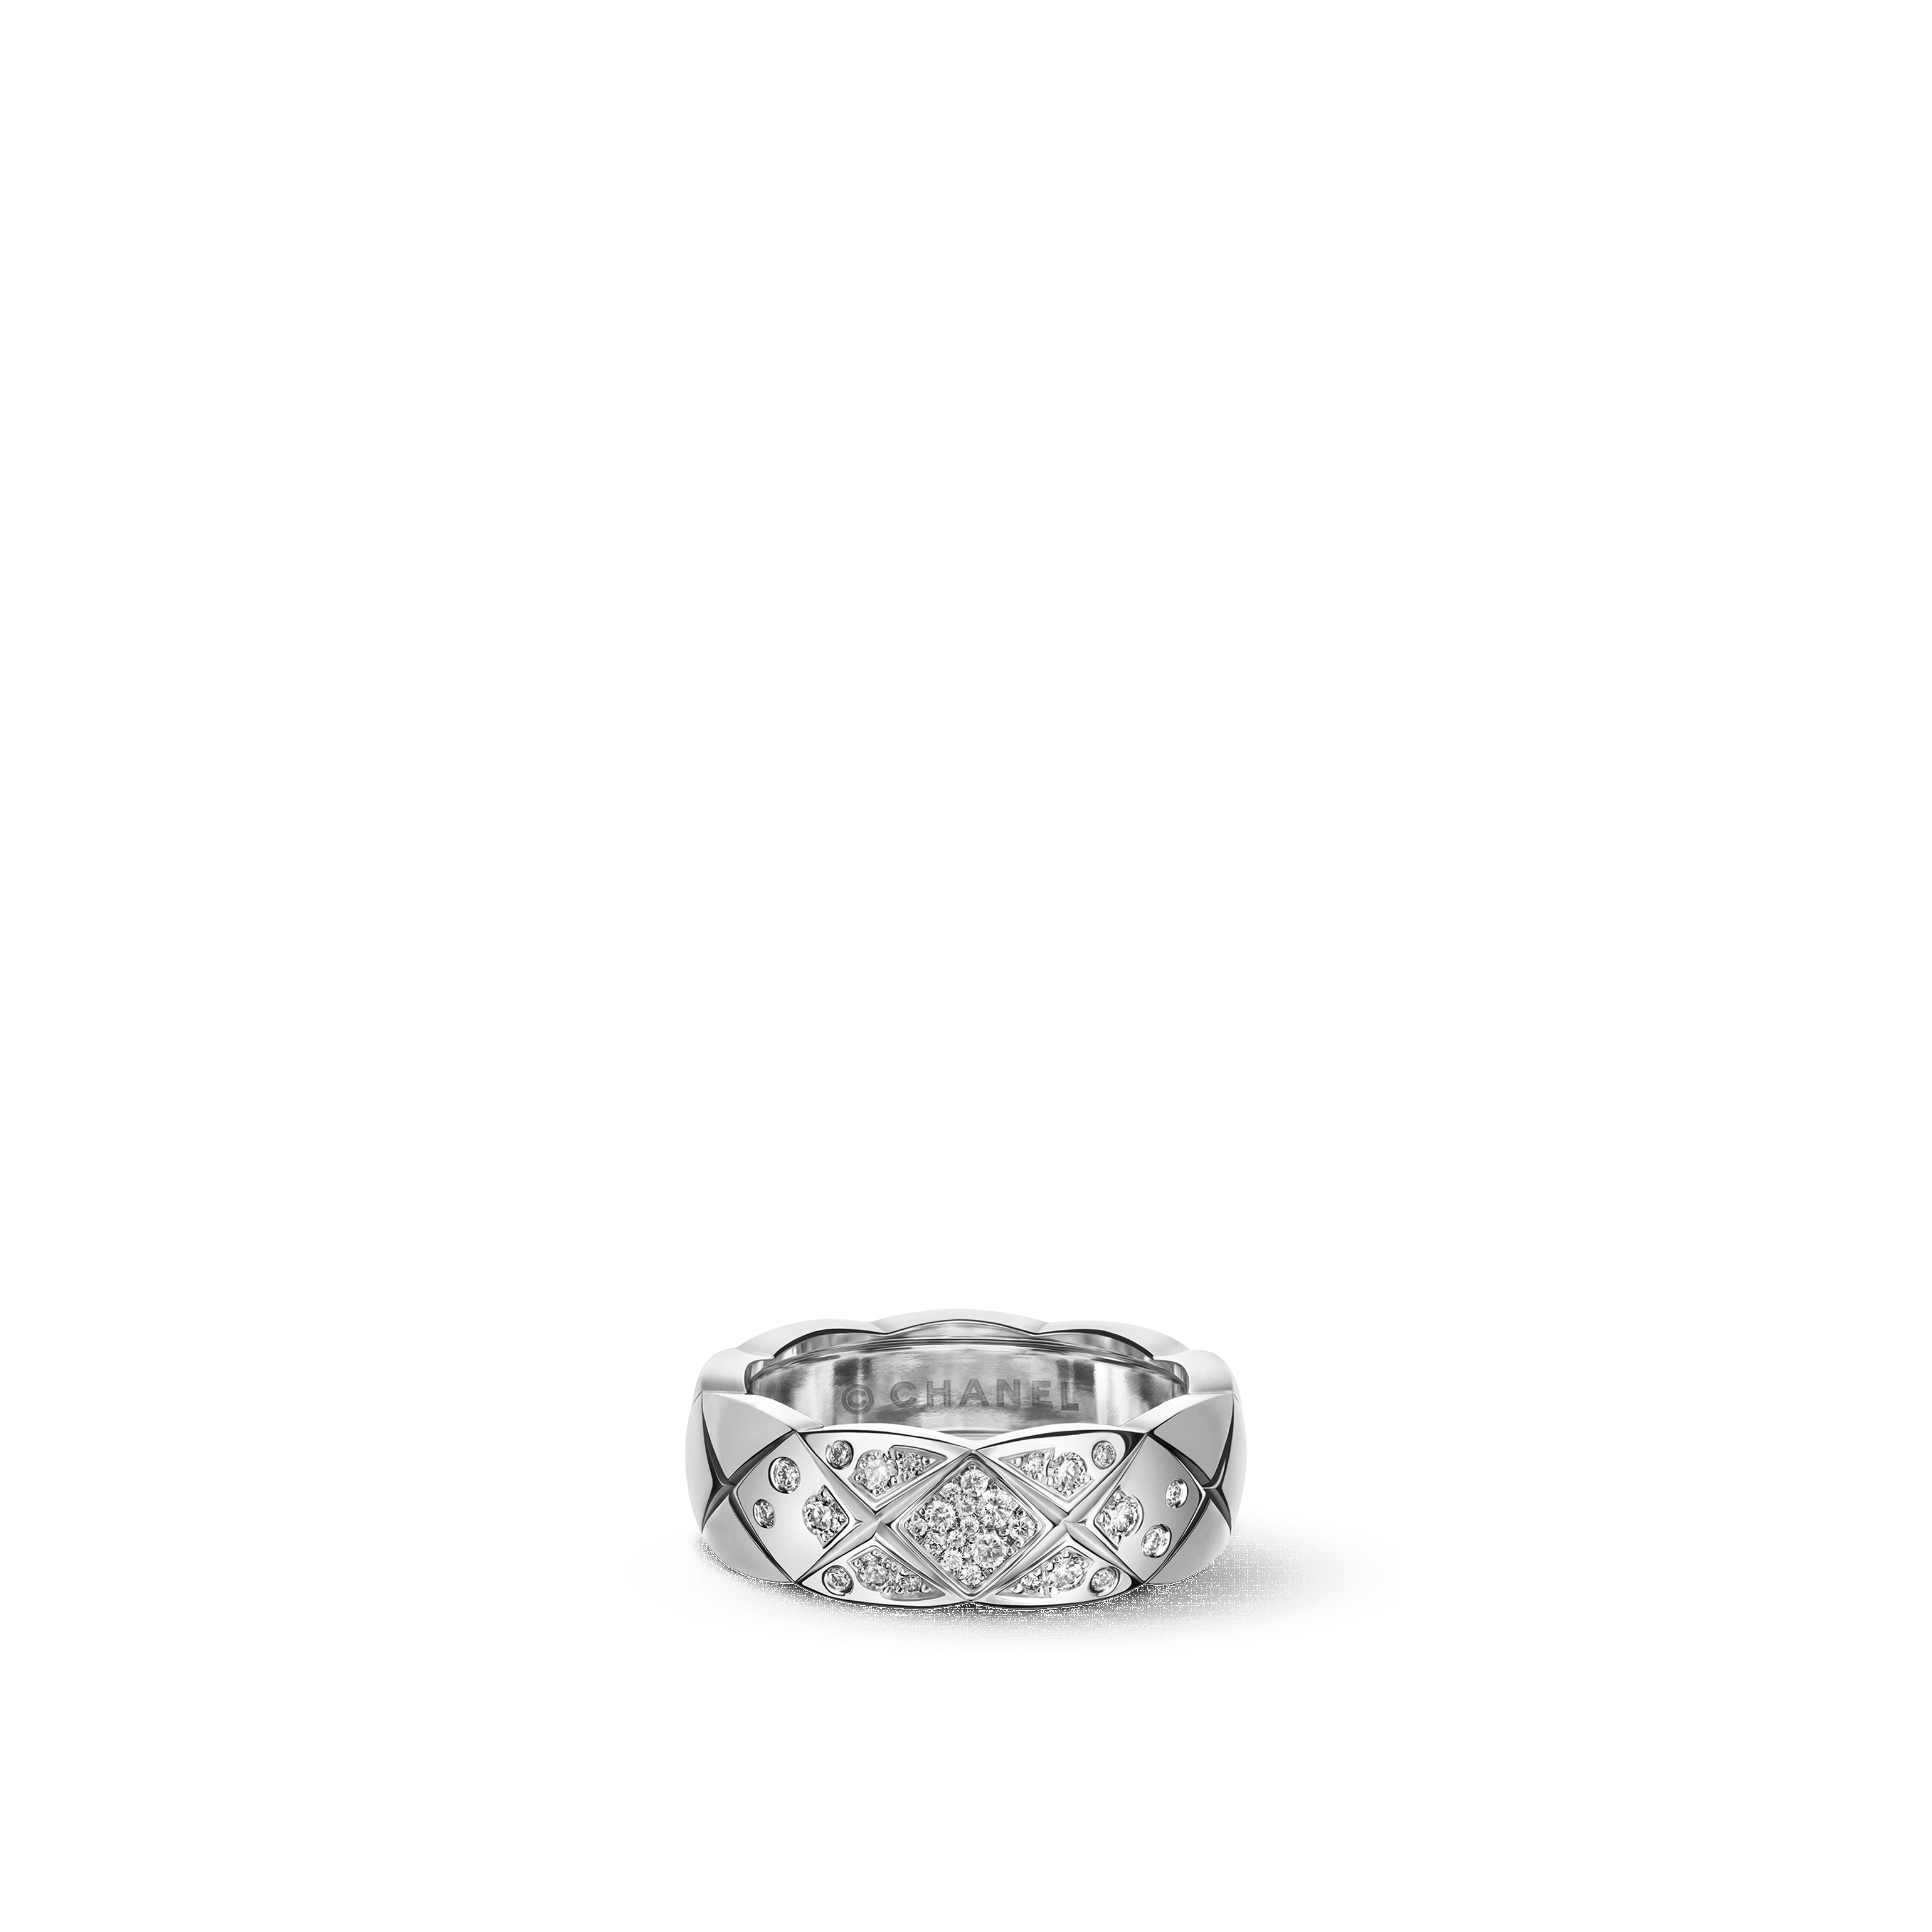 Coco Crush ring - Quilted motif, small version, 18K white gold, diamonds - CHANEL - Default view - see standard sized version